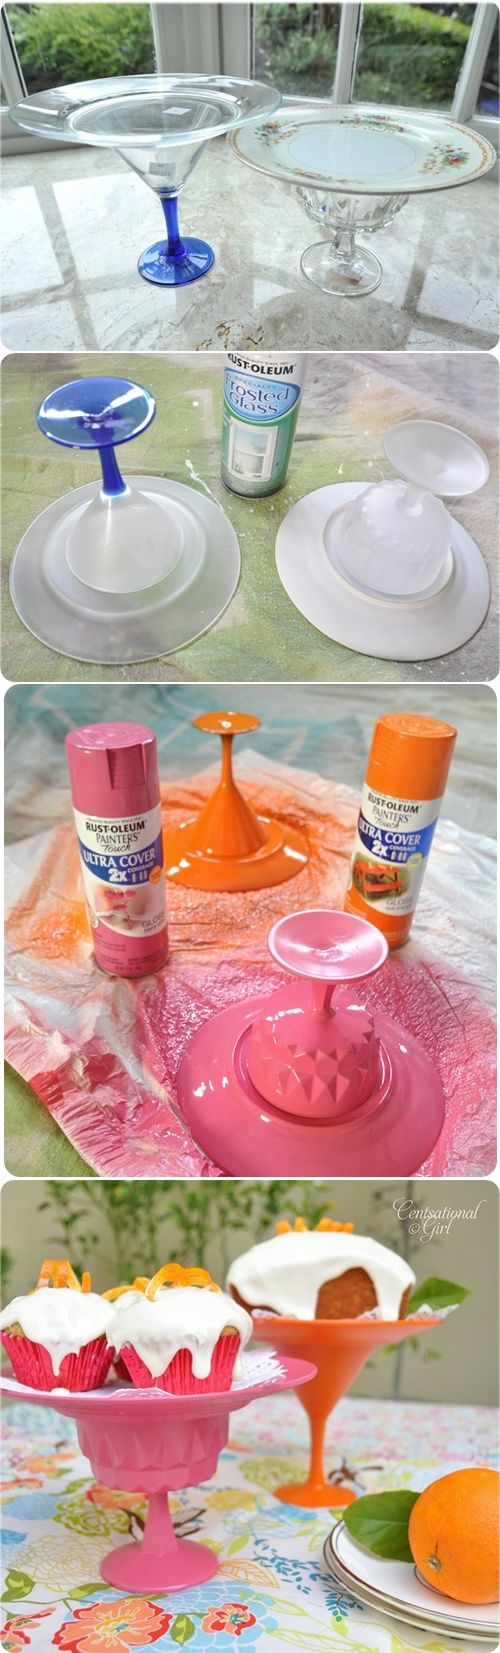 DIY food stand. can get cups and plates at dollar tree and paint at walmart. paint all bright colors and put foods one.